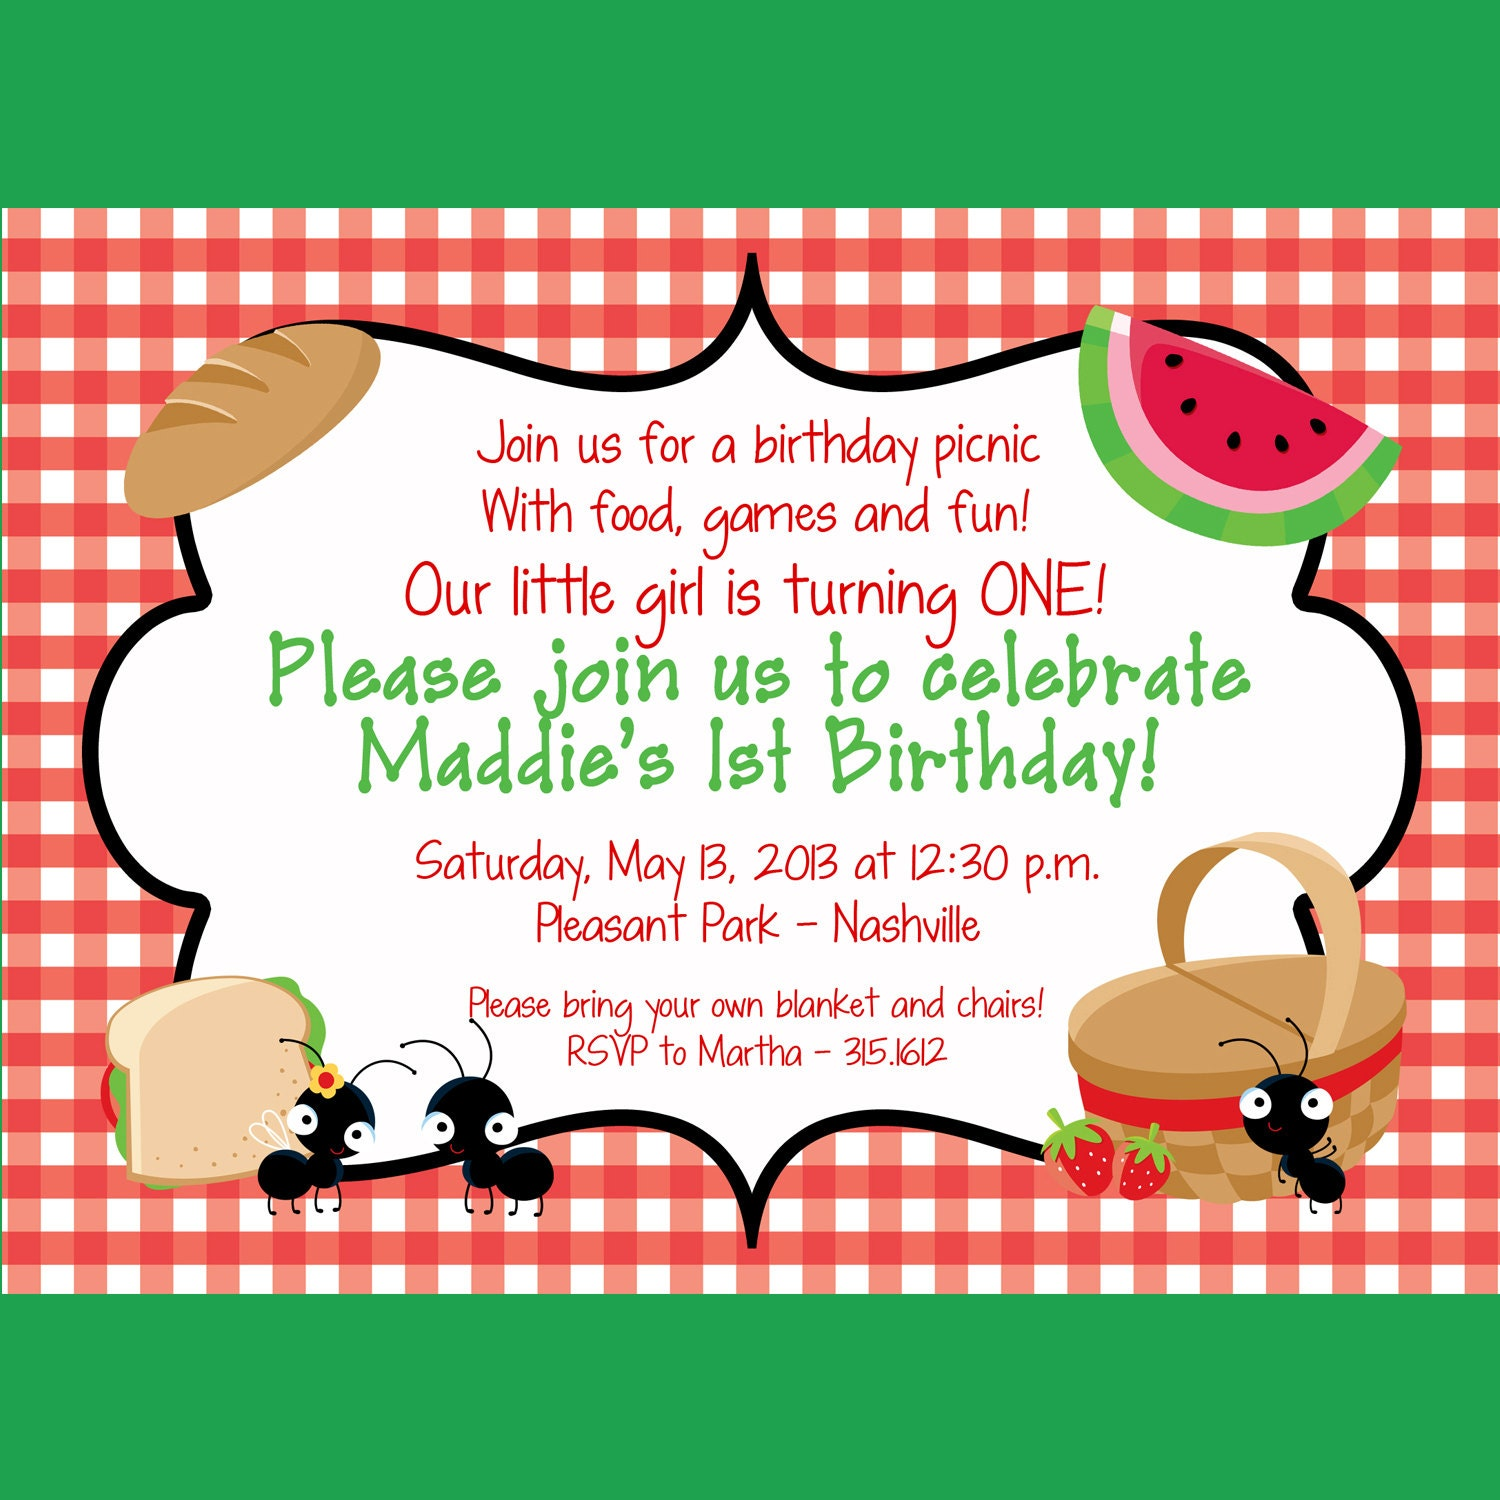 invitations and wording samples for picnics and family